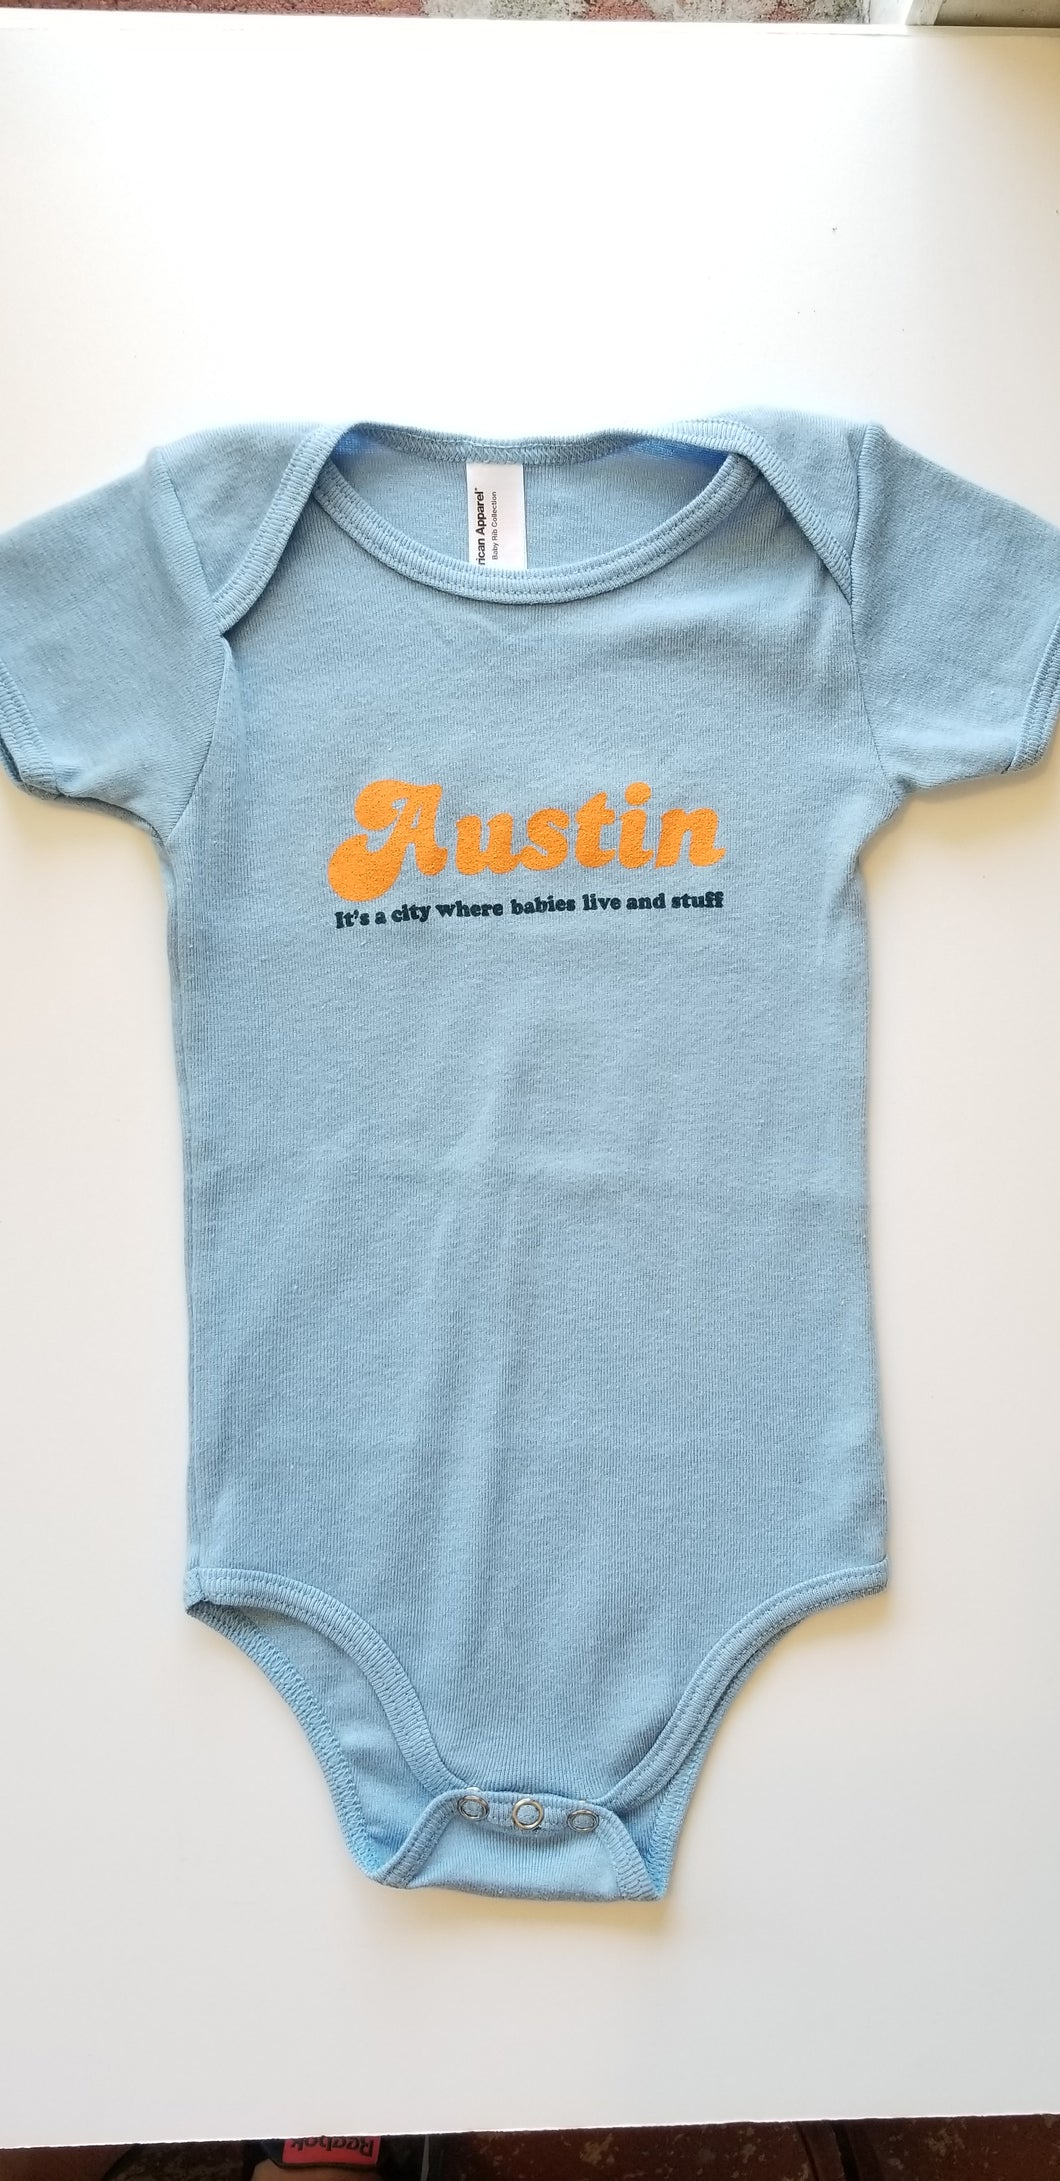 Austin- It's a City Where Babies Live and Stuff - Kids